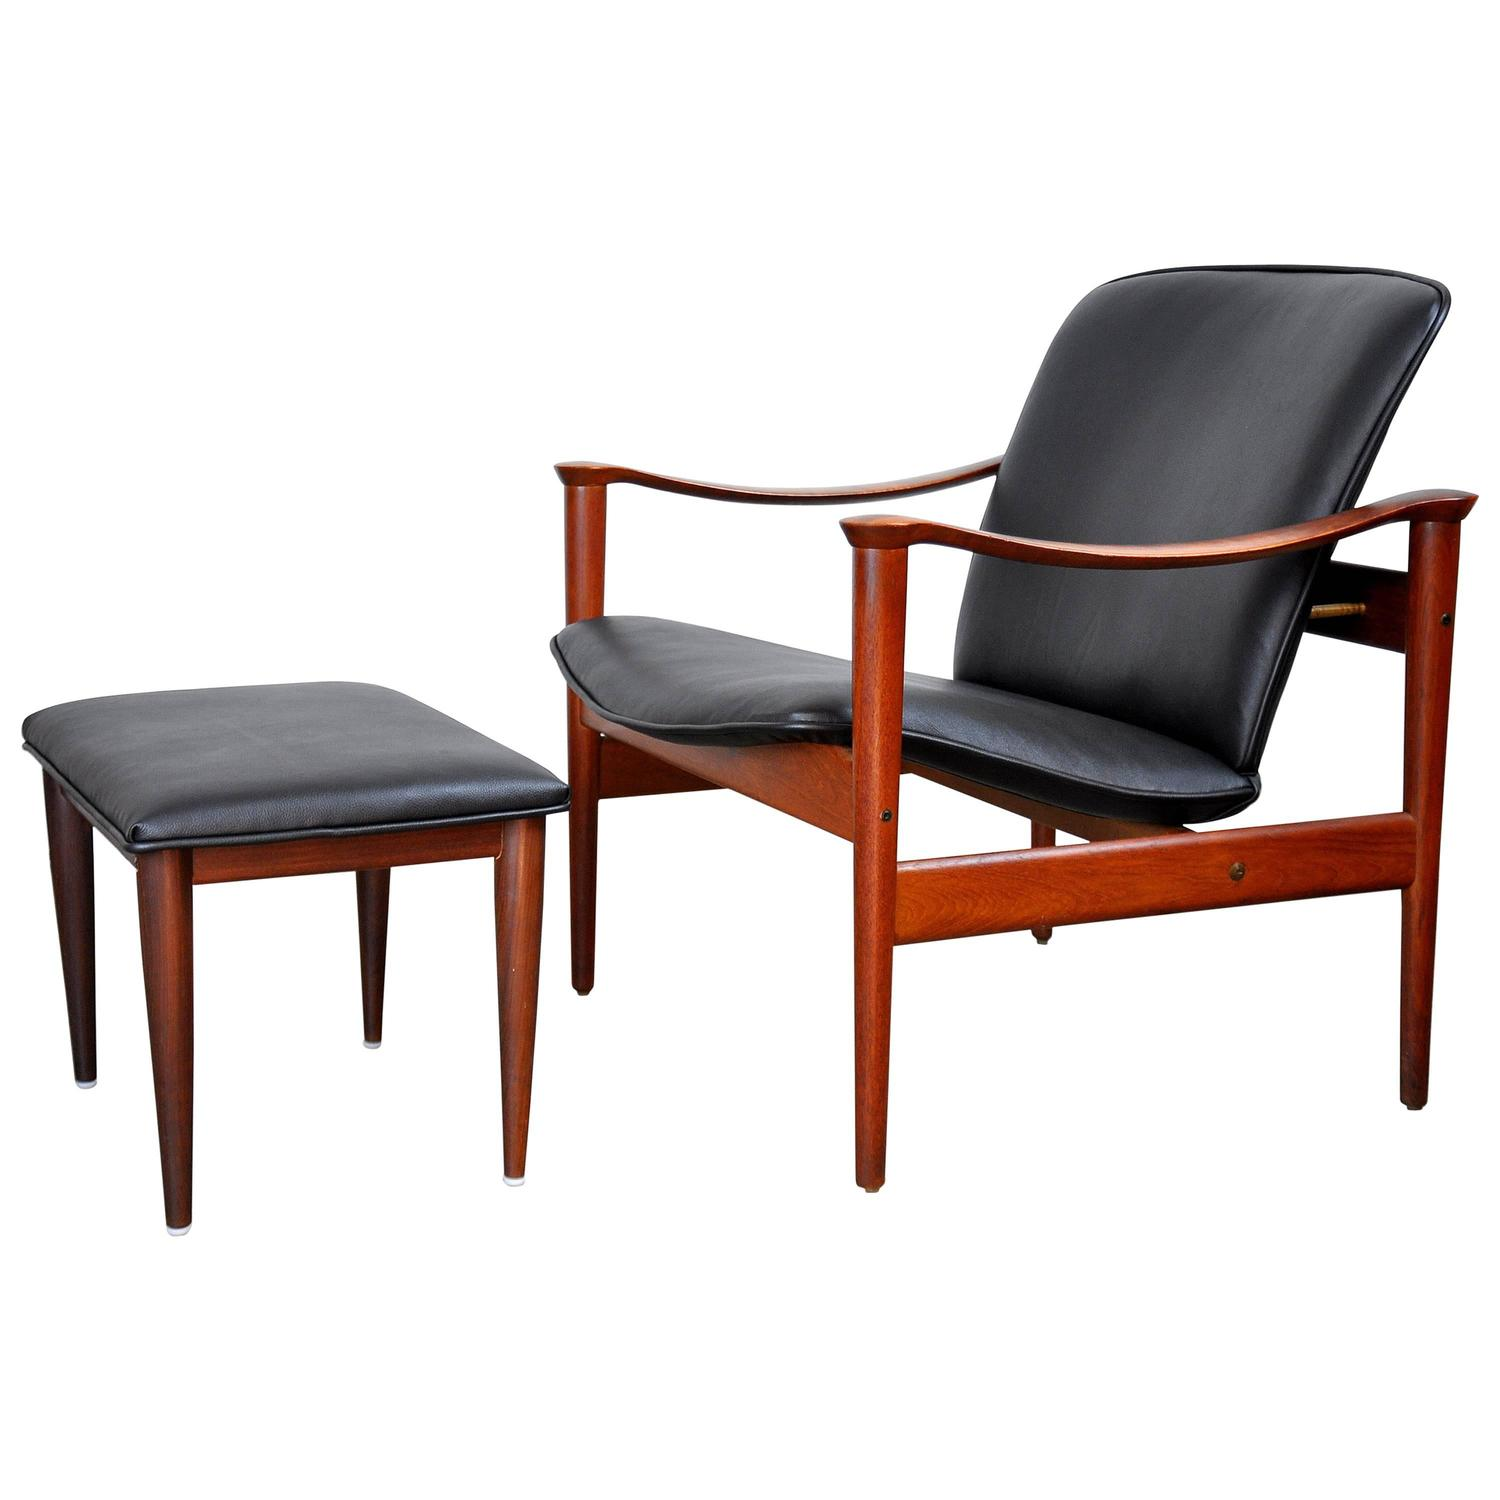 Fredrik Kayser for Vatne M¸bler Teak Lounge Chair and Ottoman at